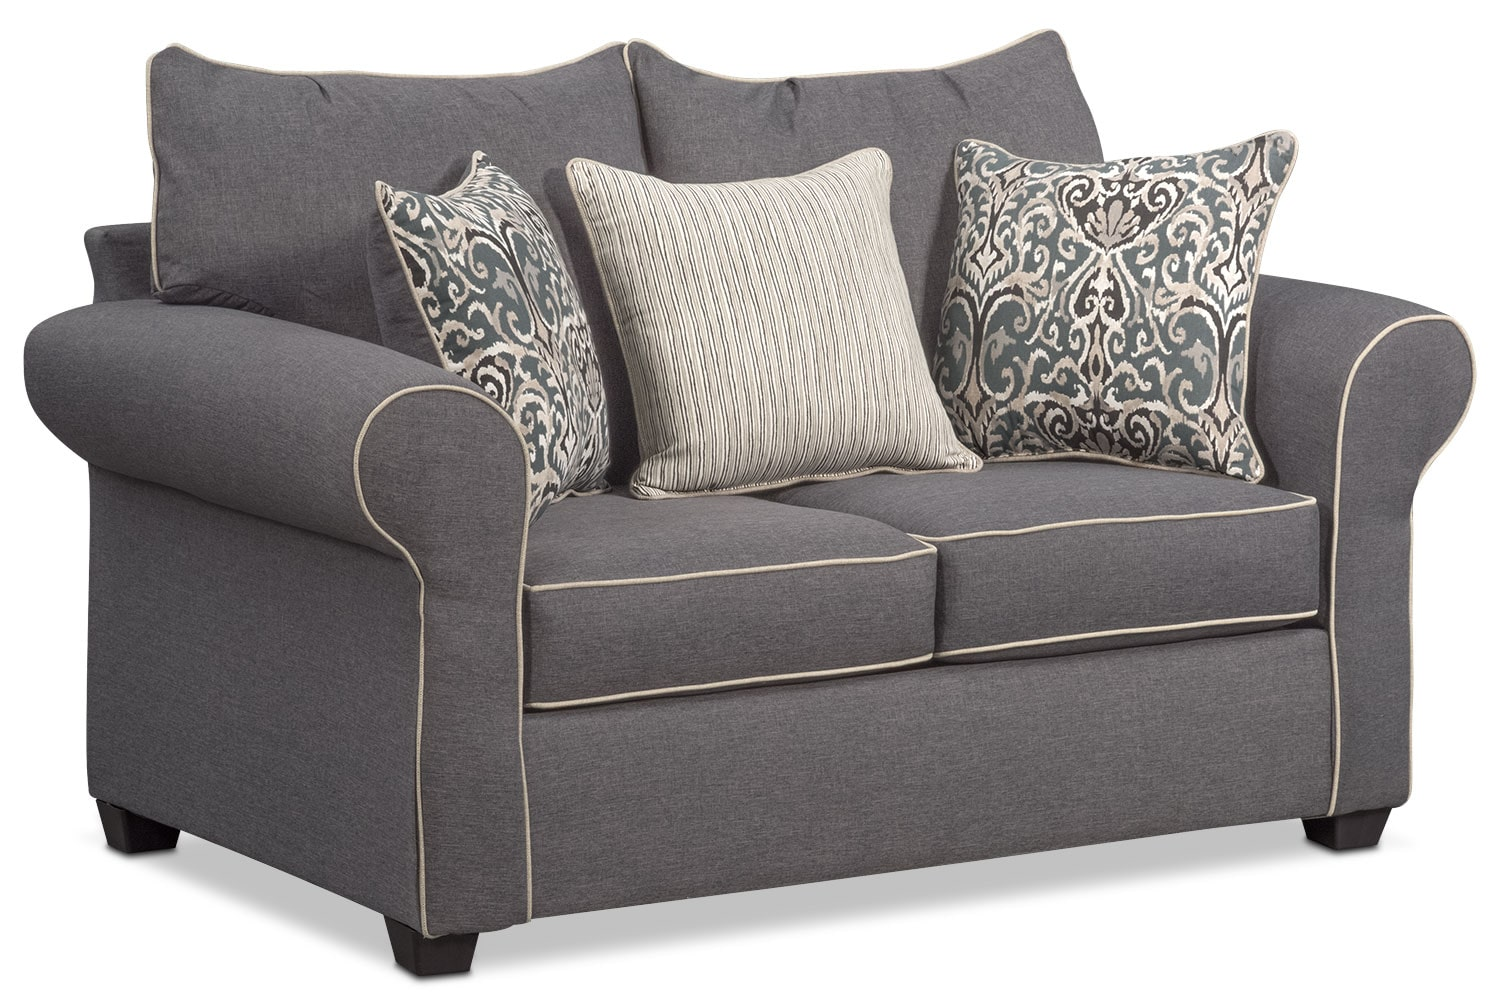 Living Room Furniture - Carla Loveseat - Gray